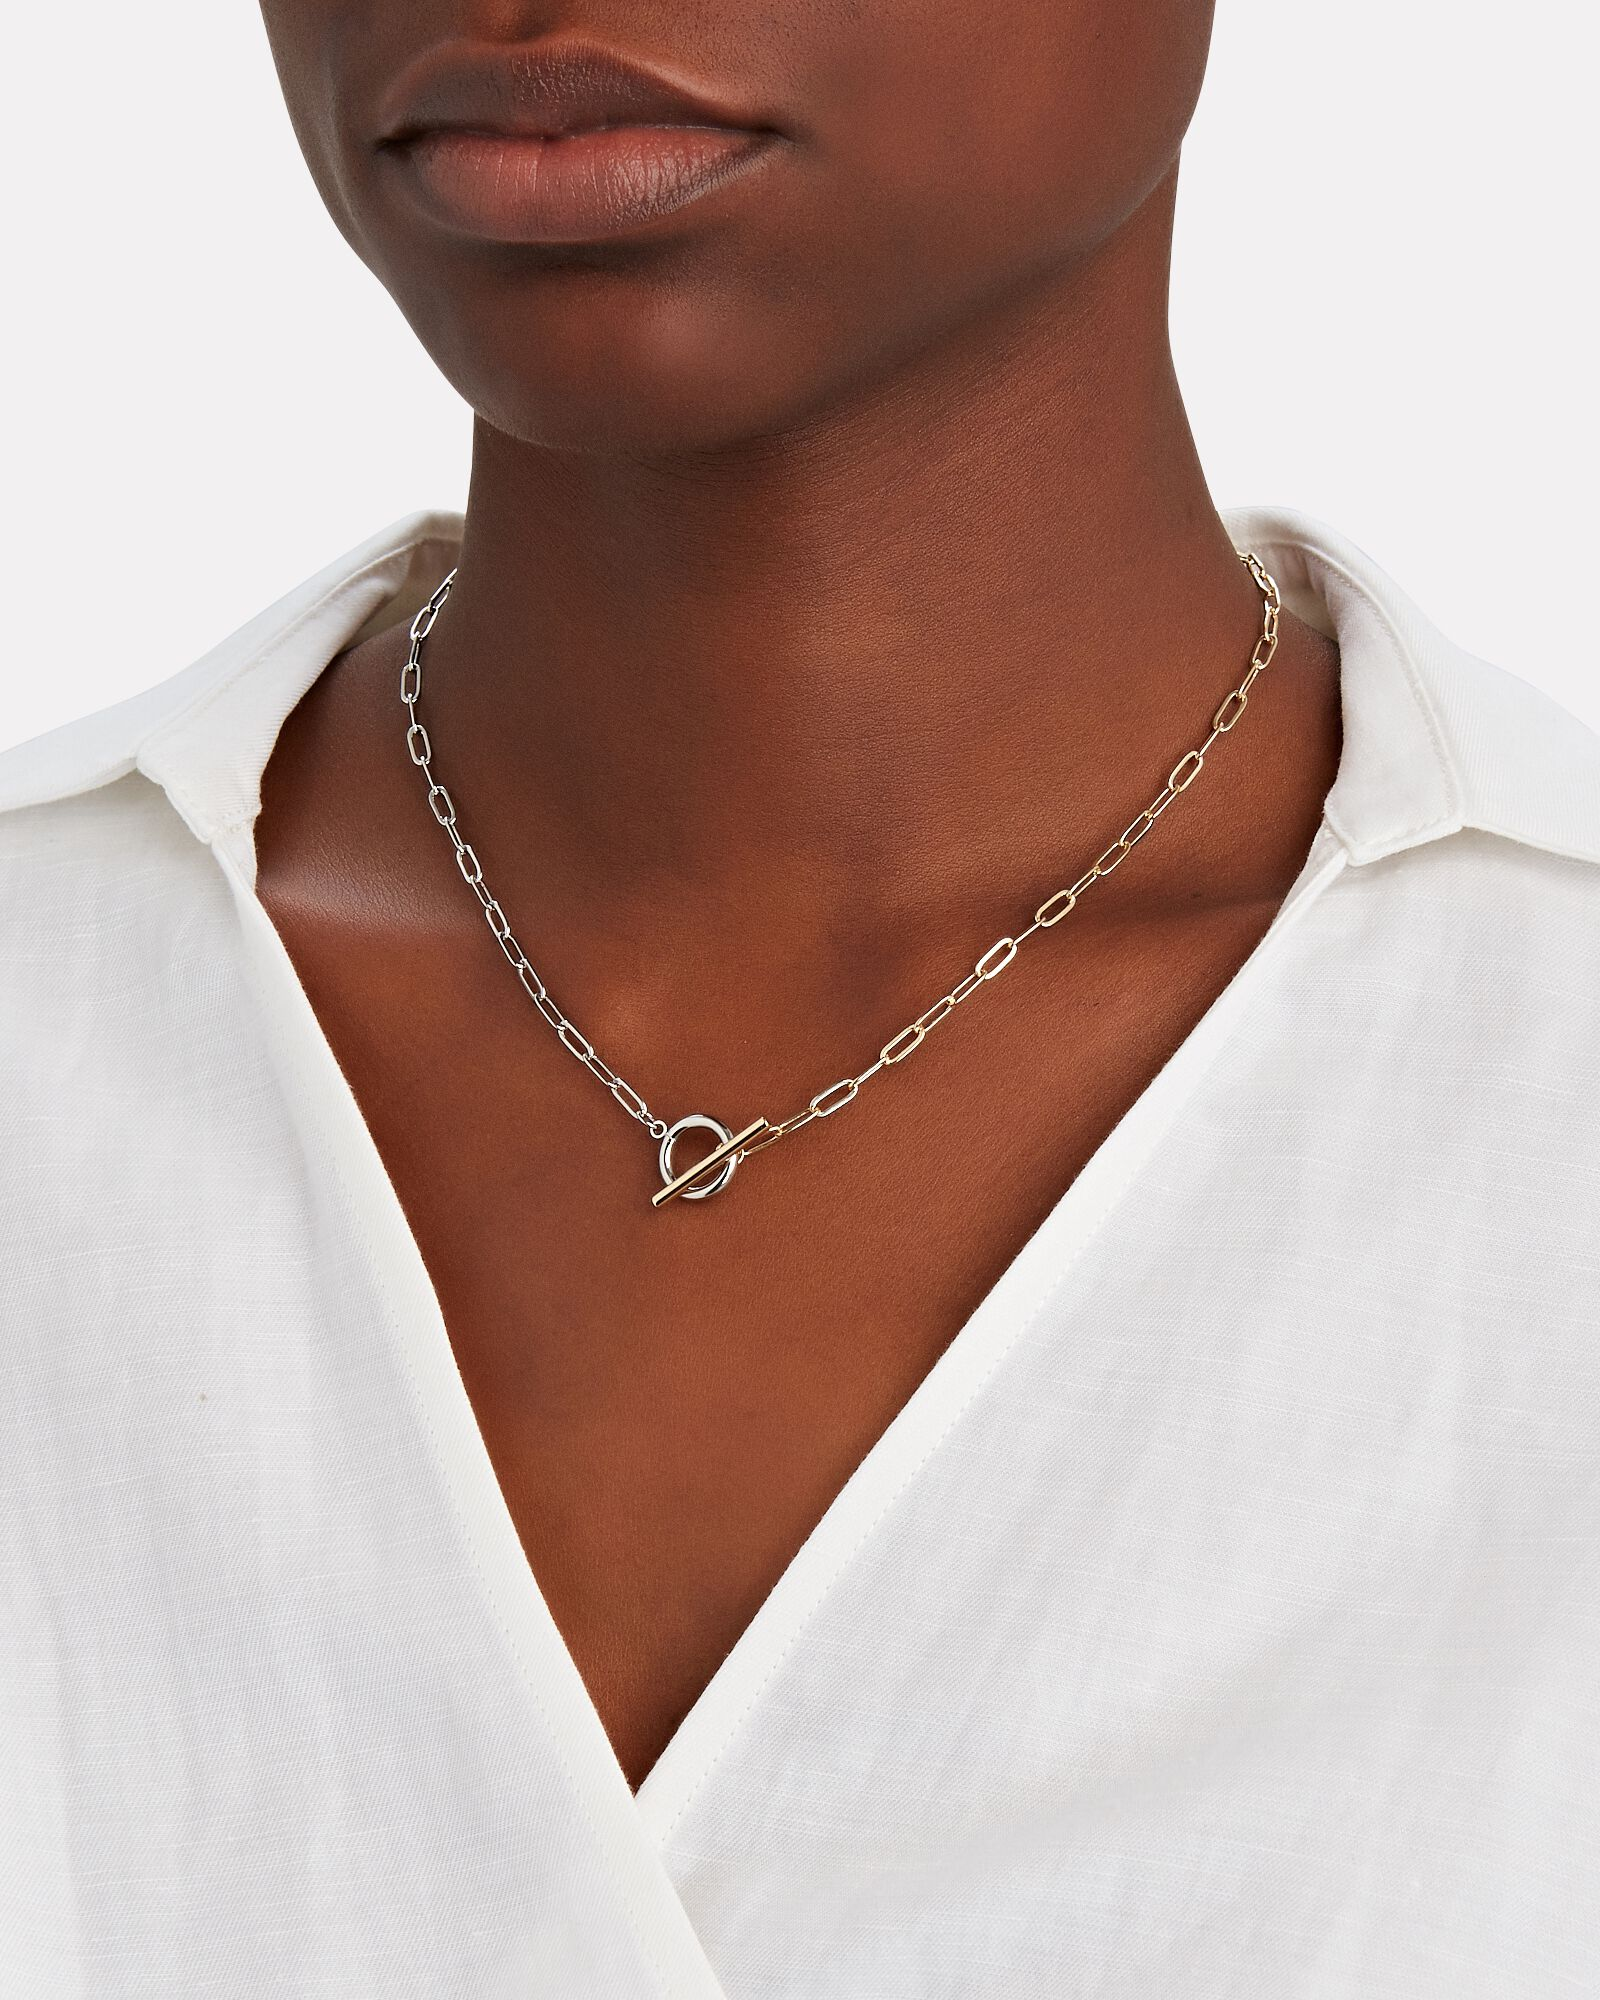 Patron Remix Two-Tone Toggle Necklace, SILVER/GOLD, hi-res